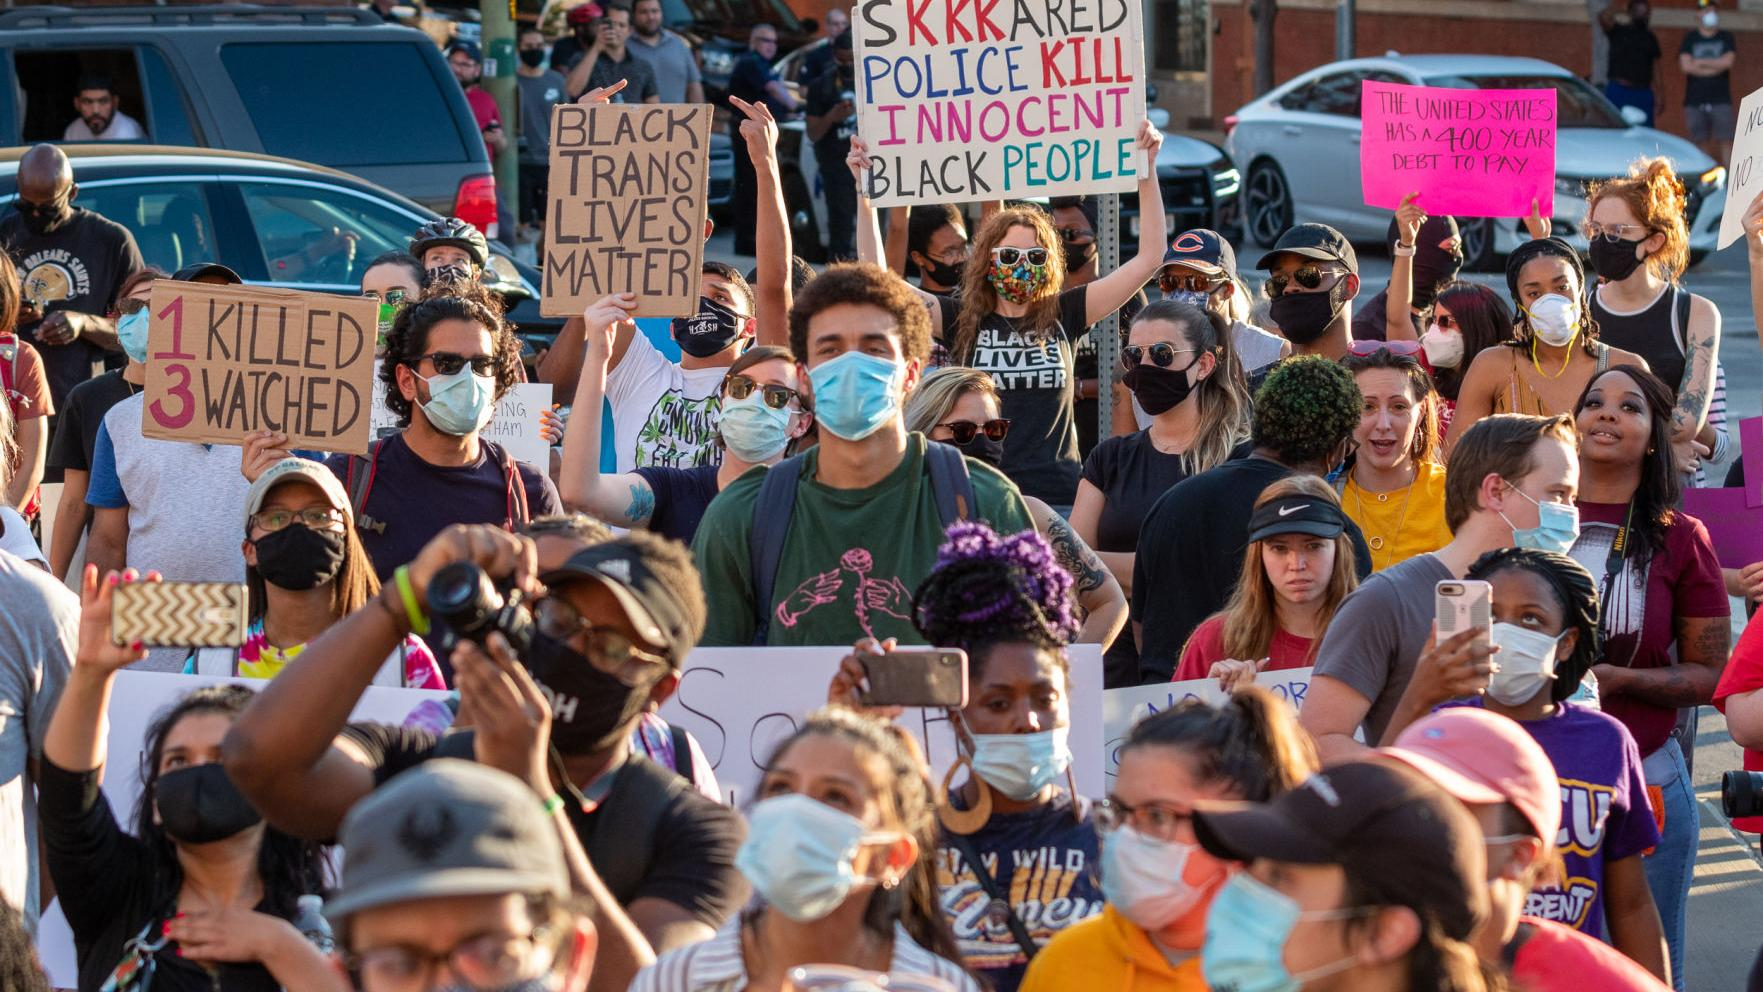 Demonstrators rally in downtown Dallas to protest police brutality following George Floyd's death